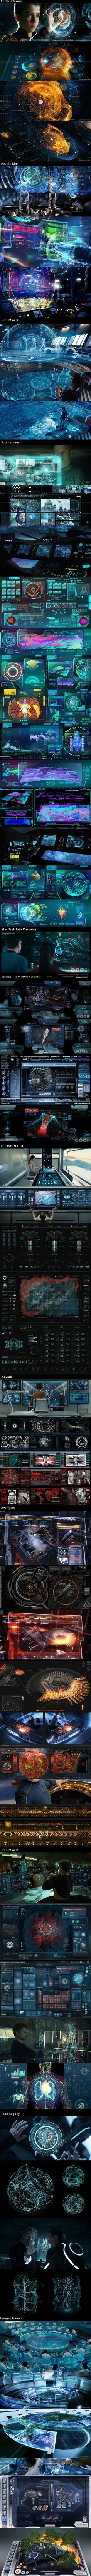 Infographics , UI Design et Web Design - UI IxD SciFi Interface n' Design [] User Interface [Ender's Game Web Design, Visual Design, Game Design, Graphic Design, Gui Interface, User Interface Design, Visualisation, Data Visualization, Interaction Design